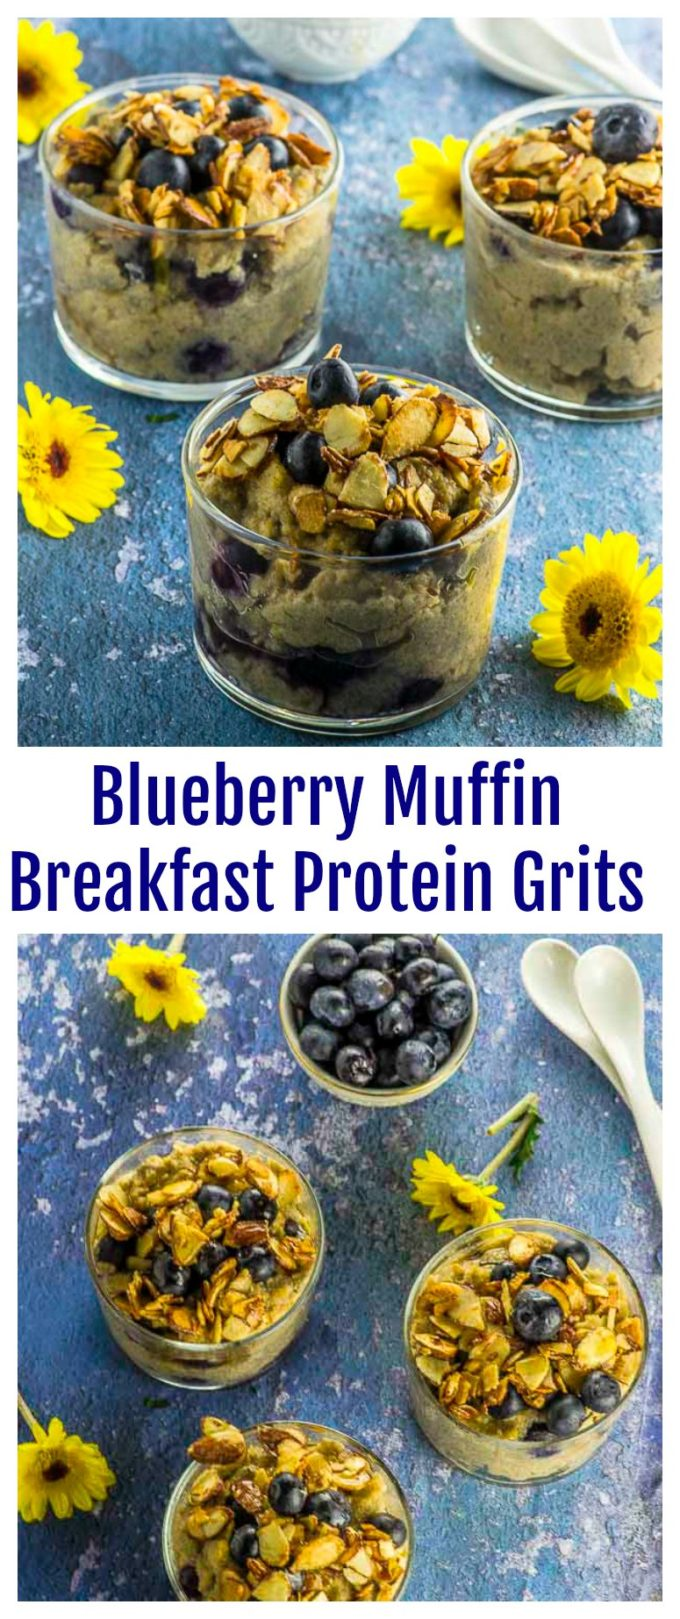 If you like protein oats (aka proats), you'll  love these Blueberry Muffin Protein Grits! Hearty and satisfying, with a hint of cinnamon and topped with maple toasted almonds, to start your day strong. Vegan and  gluten free. breakfast.